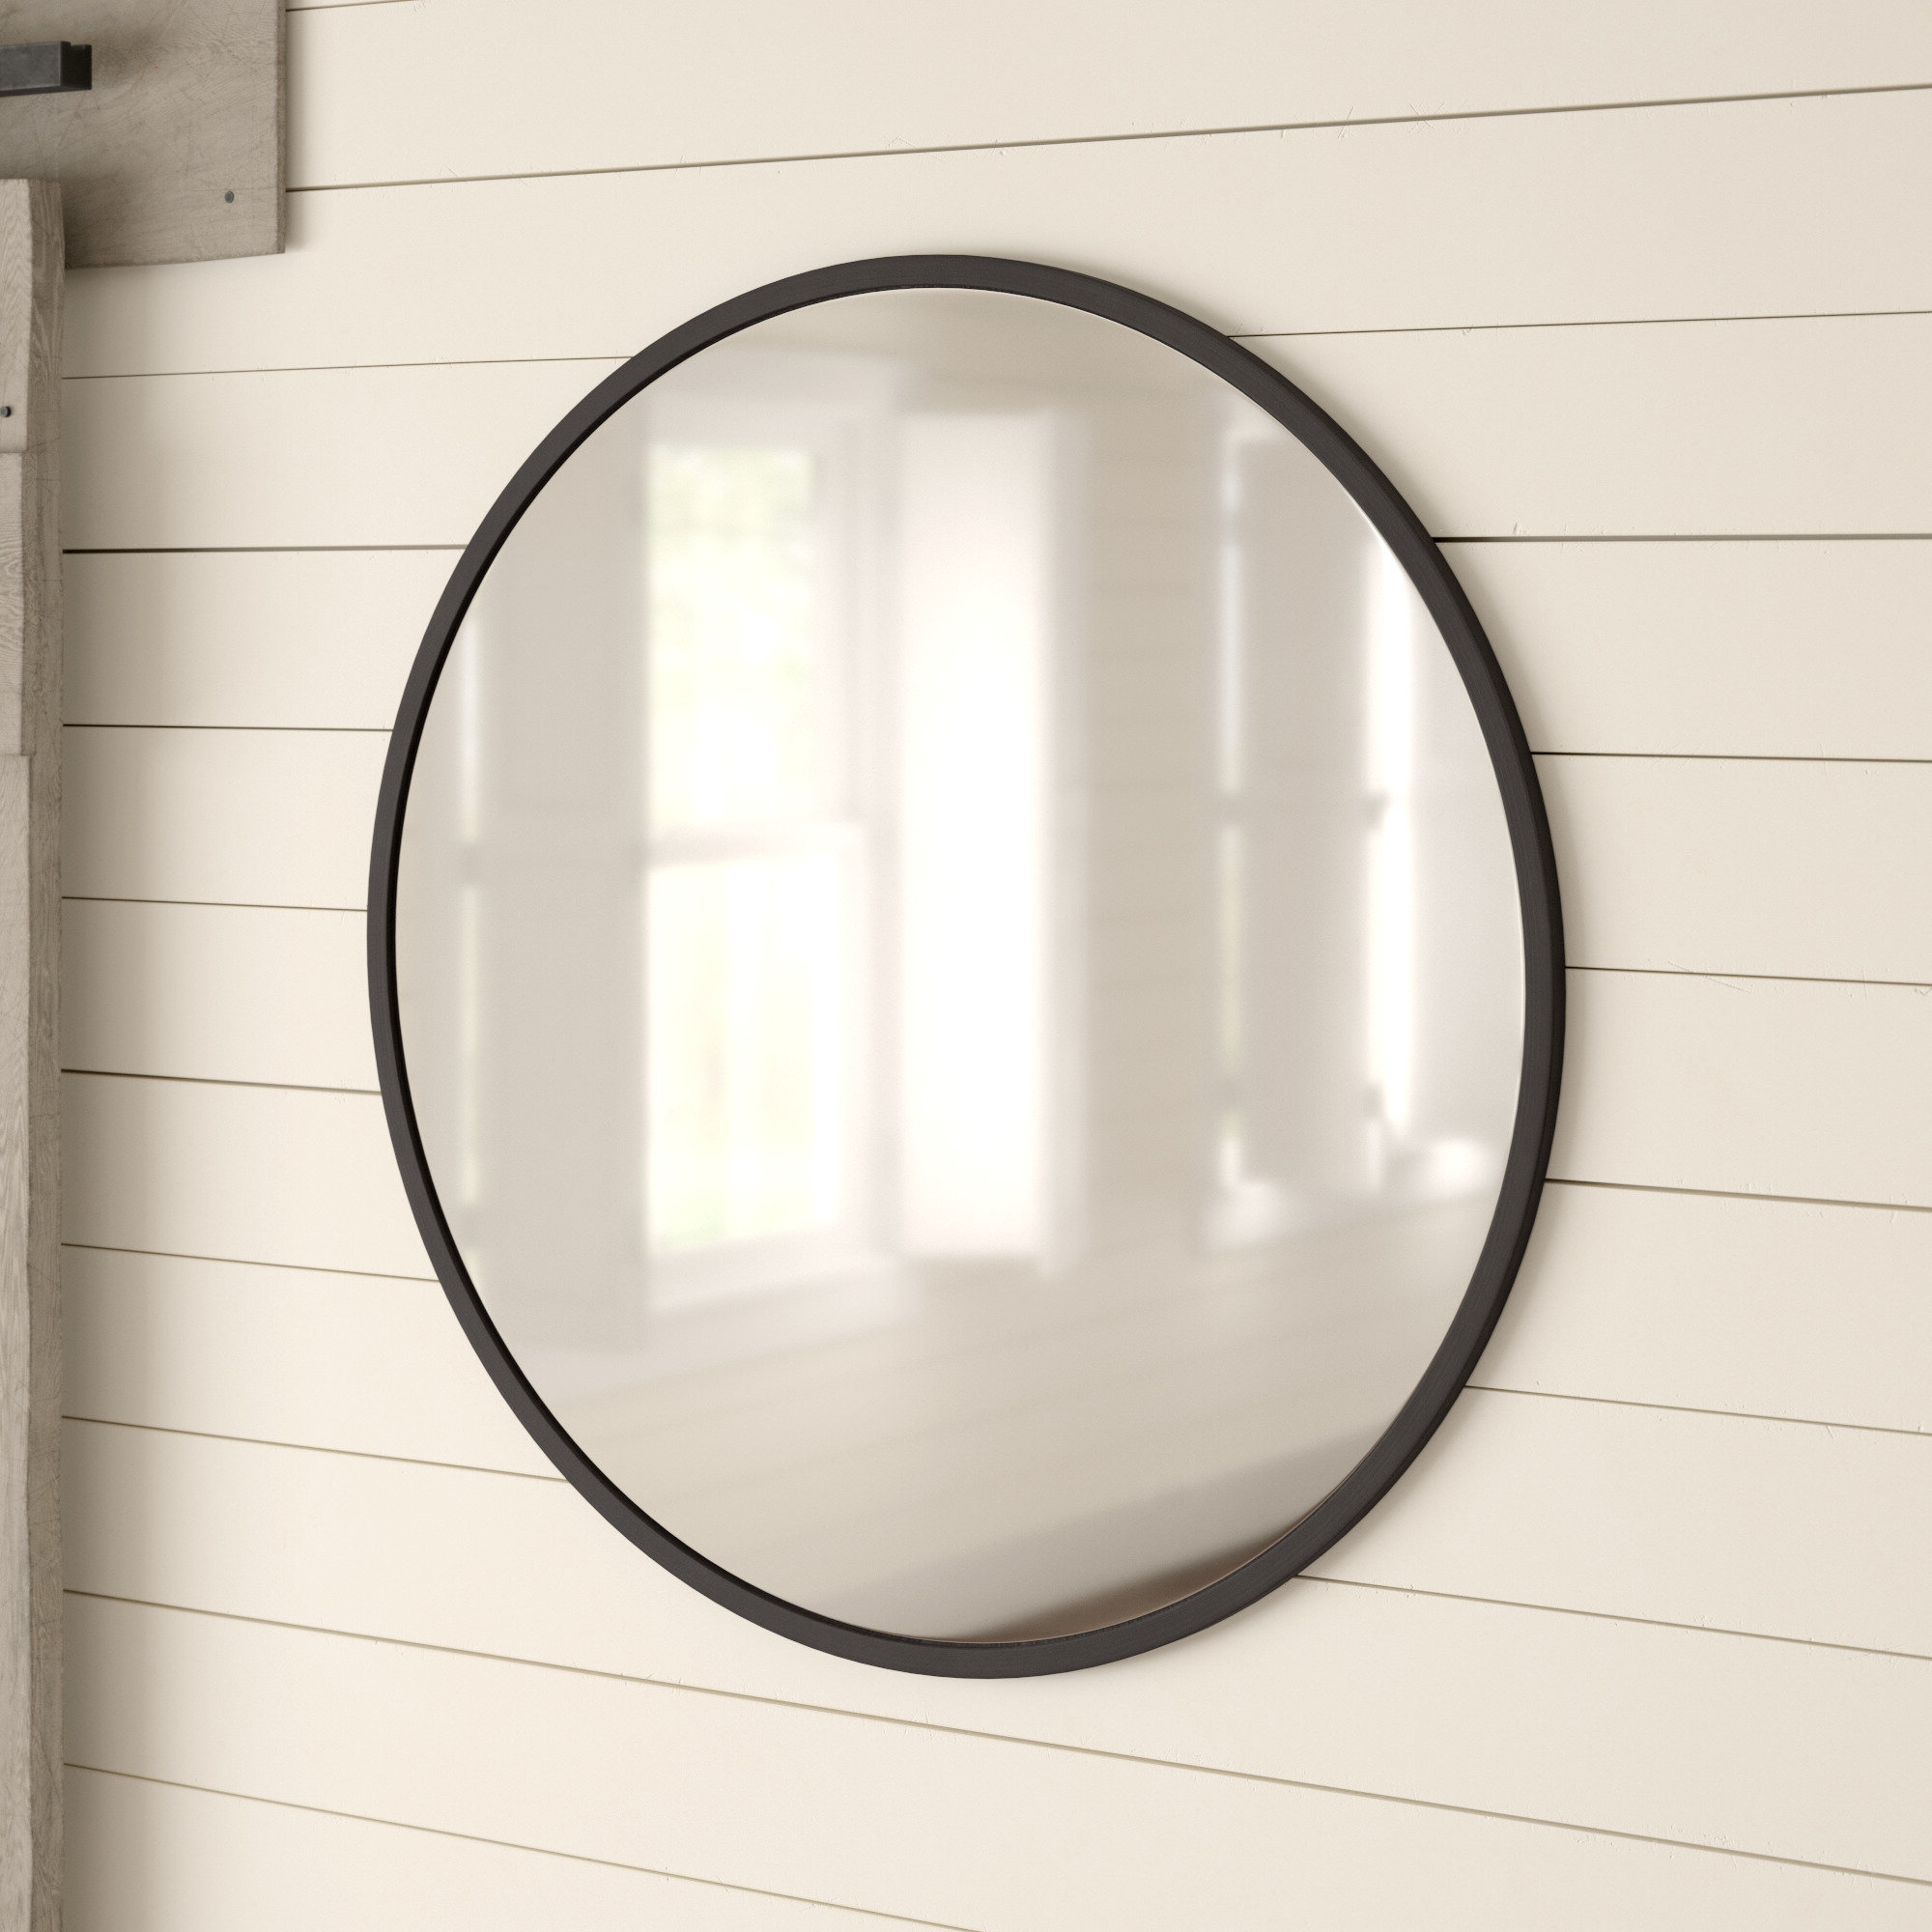 Hub Modern And Contemporary Accent Mirror Regarding Favorite Colton Modern & Contemporary Wall Mirrors (View 8 of 20)